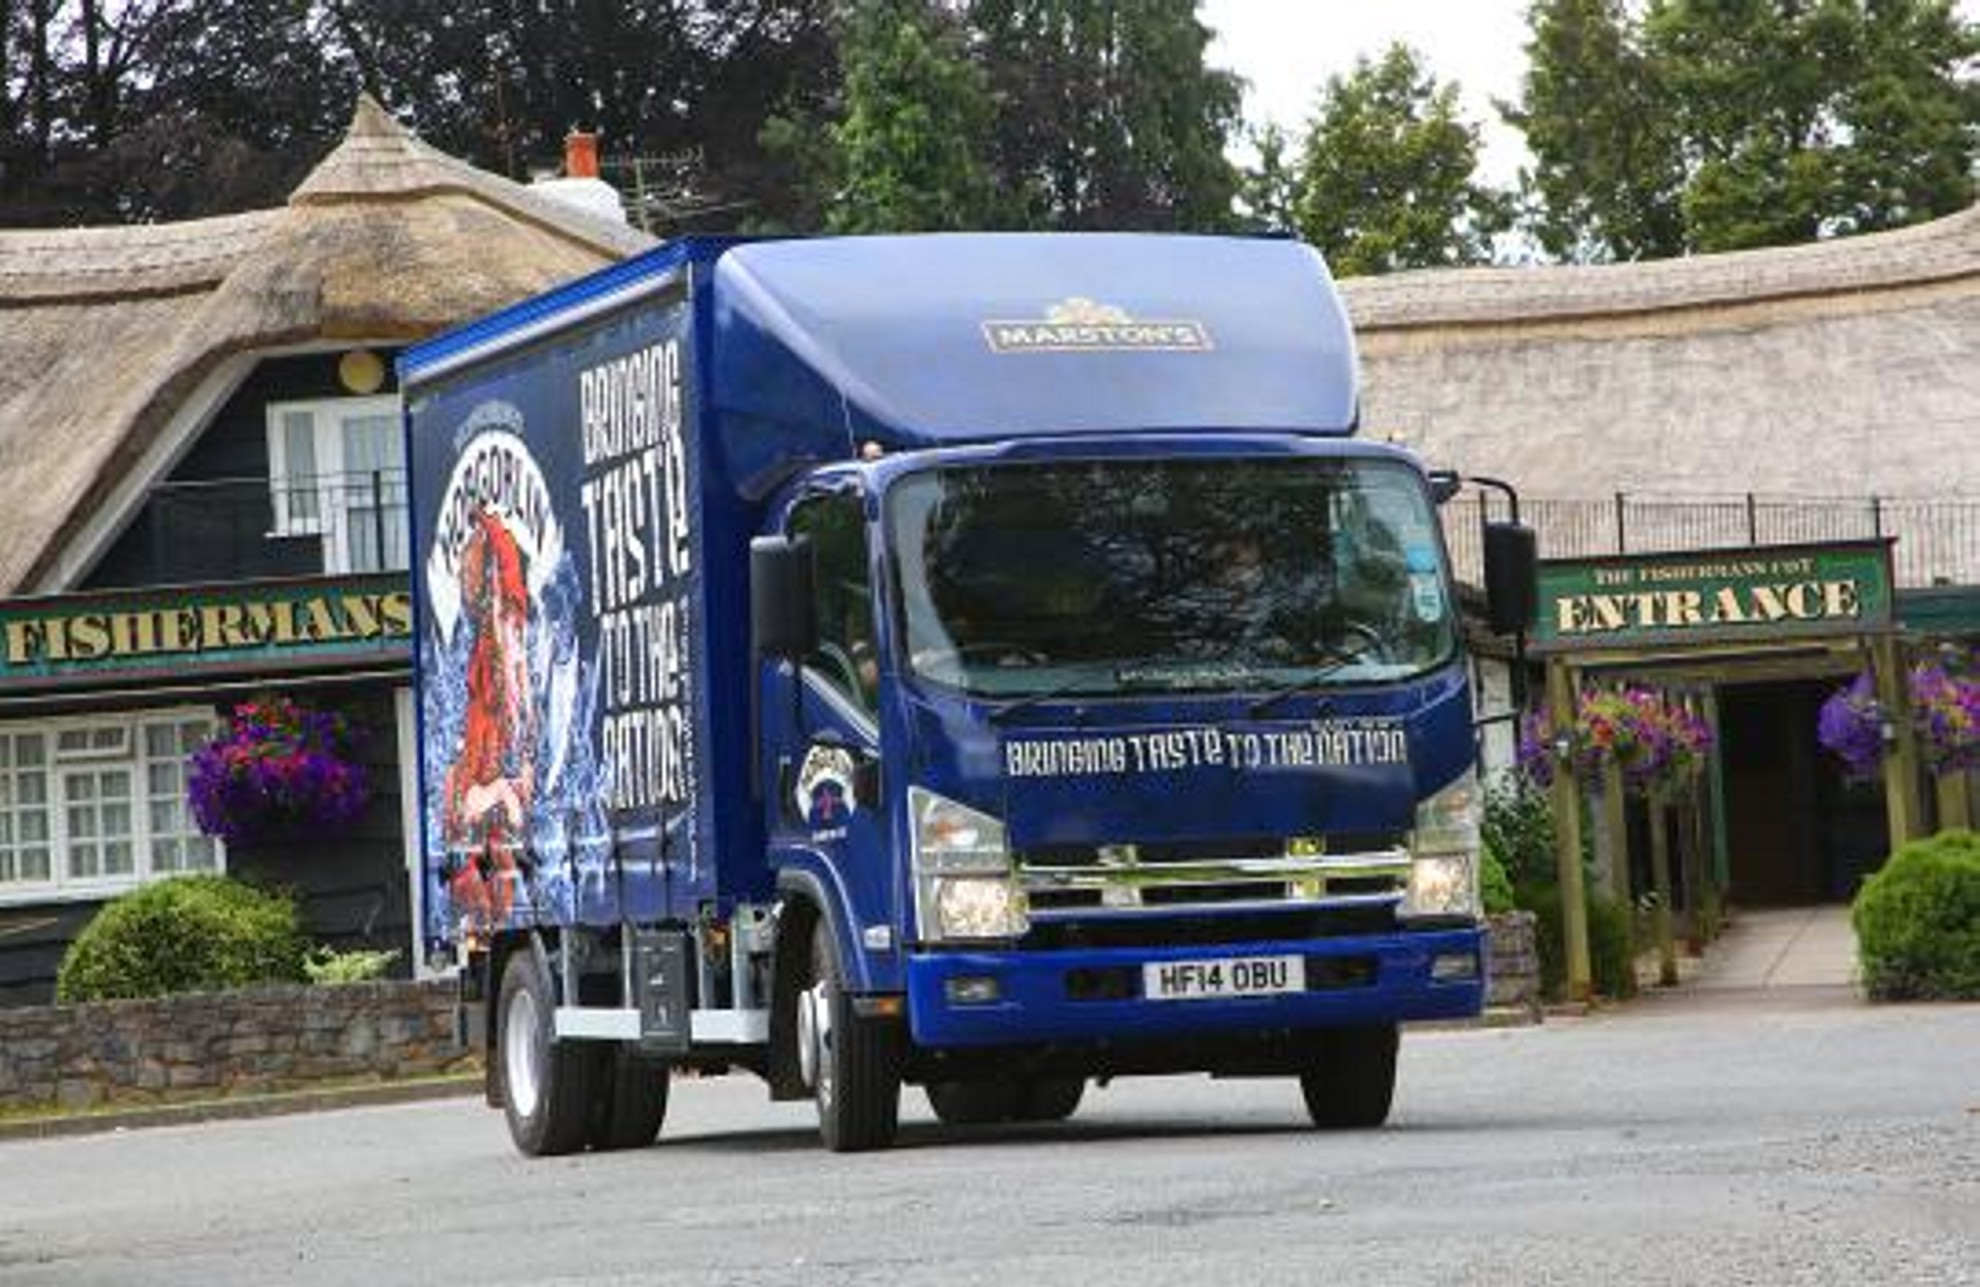 Based out of Marston's Exeter depot, the new Isuzu is turning heads everywhere. Not only is it a new vehicle, but it's also sporting an award-winning livery ...